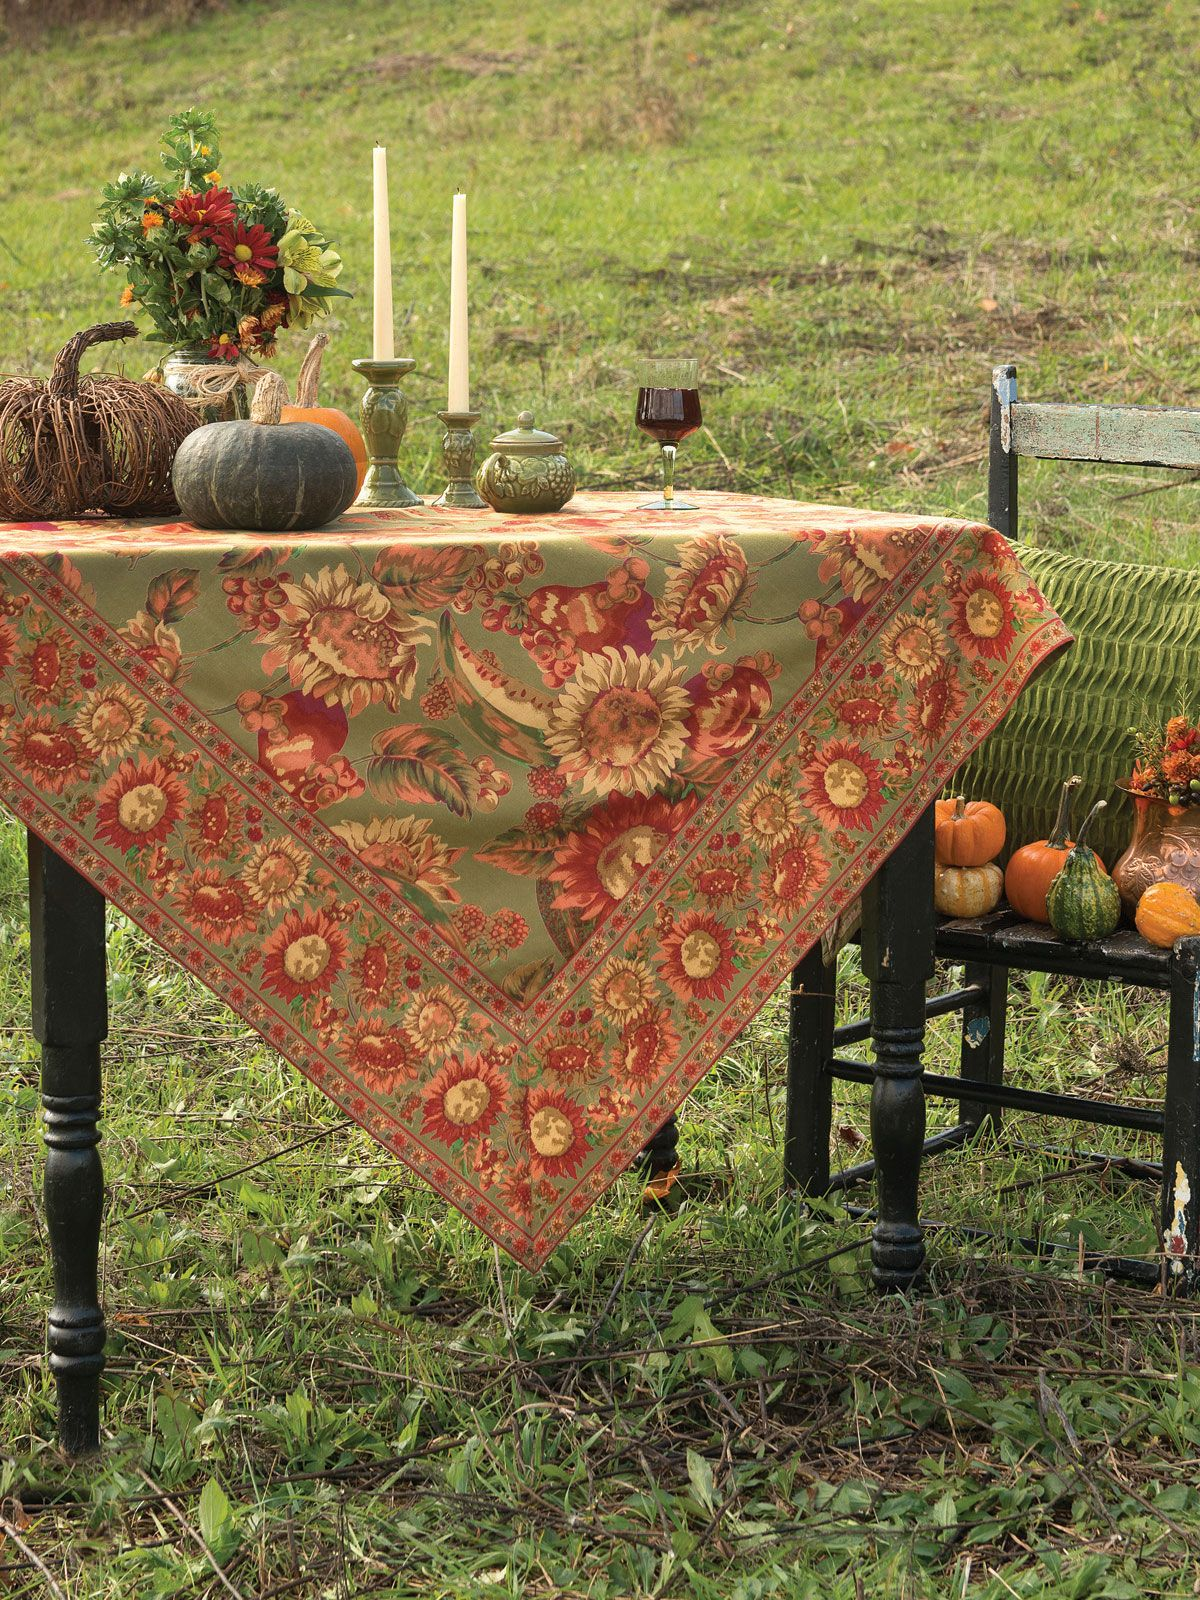 Sunflower Tablecloth - Olive | Table Linens & Kitchen, Tablecloths ...